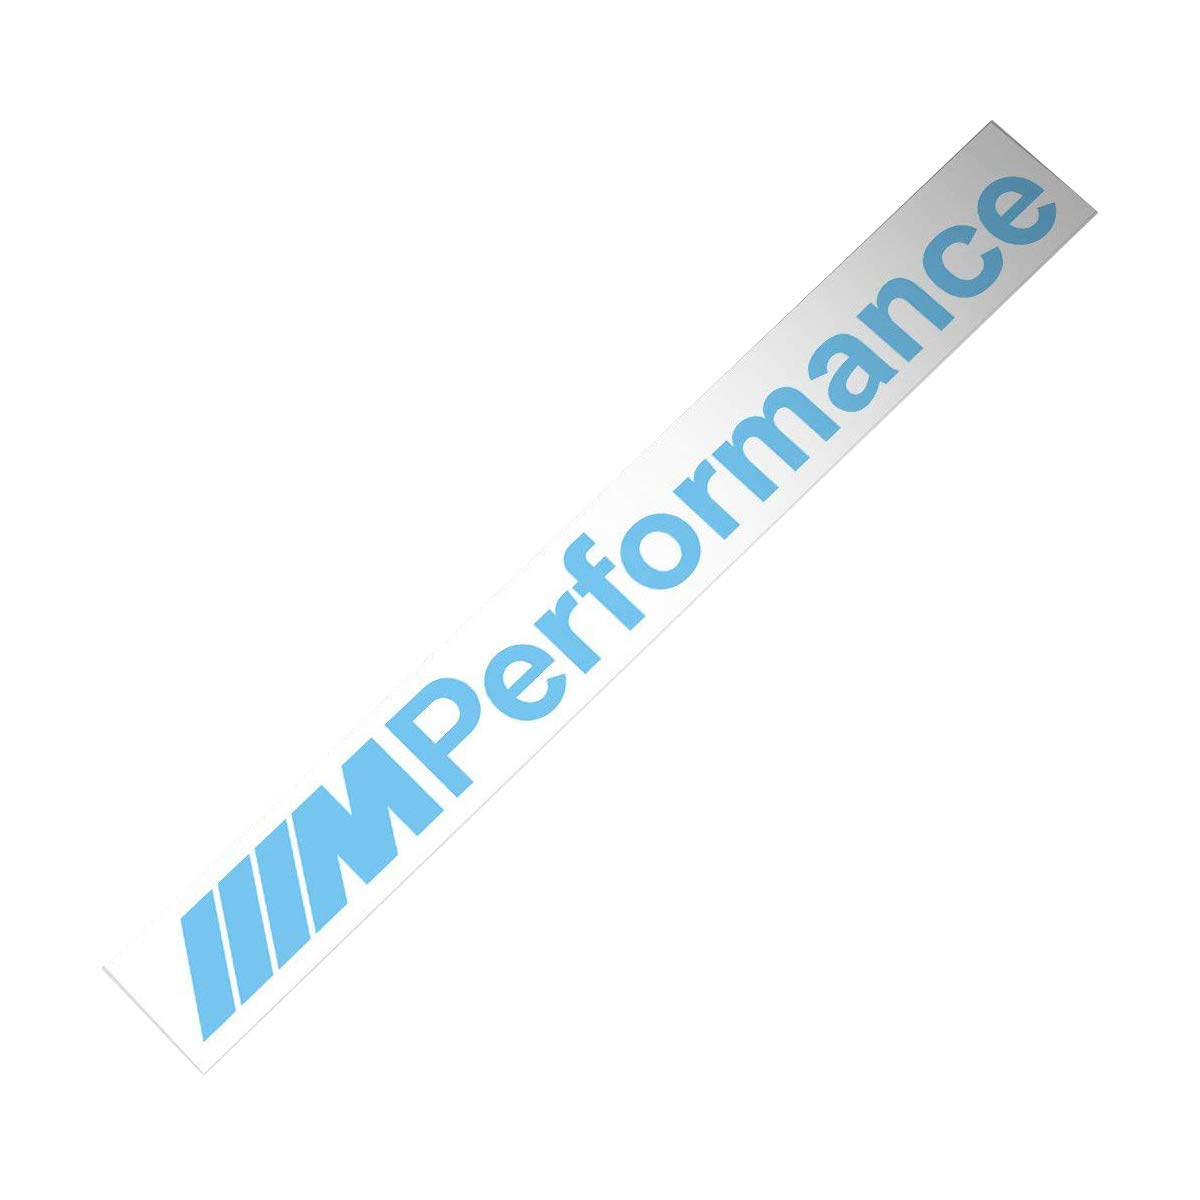 New Font Letter Demupai for M Performance Windshield Decal Windows Sticker